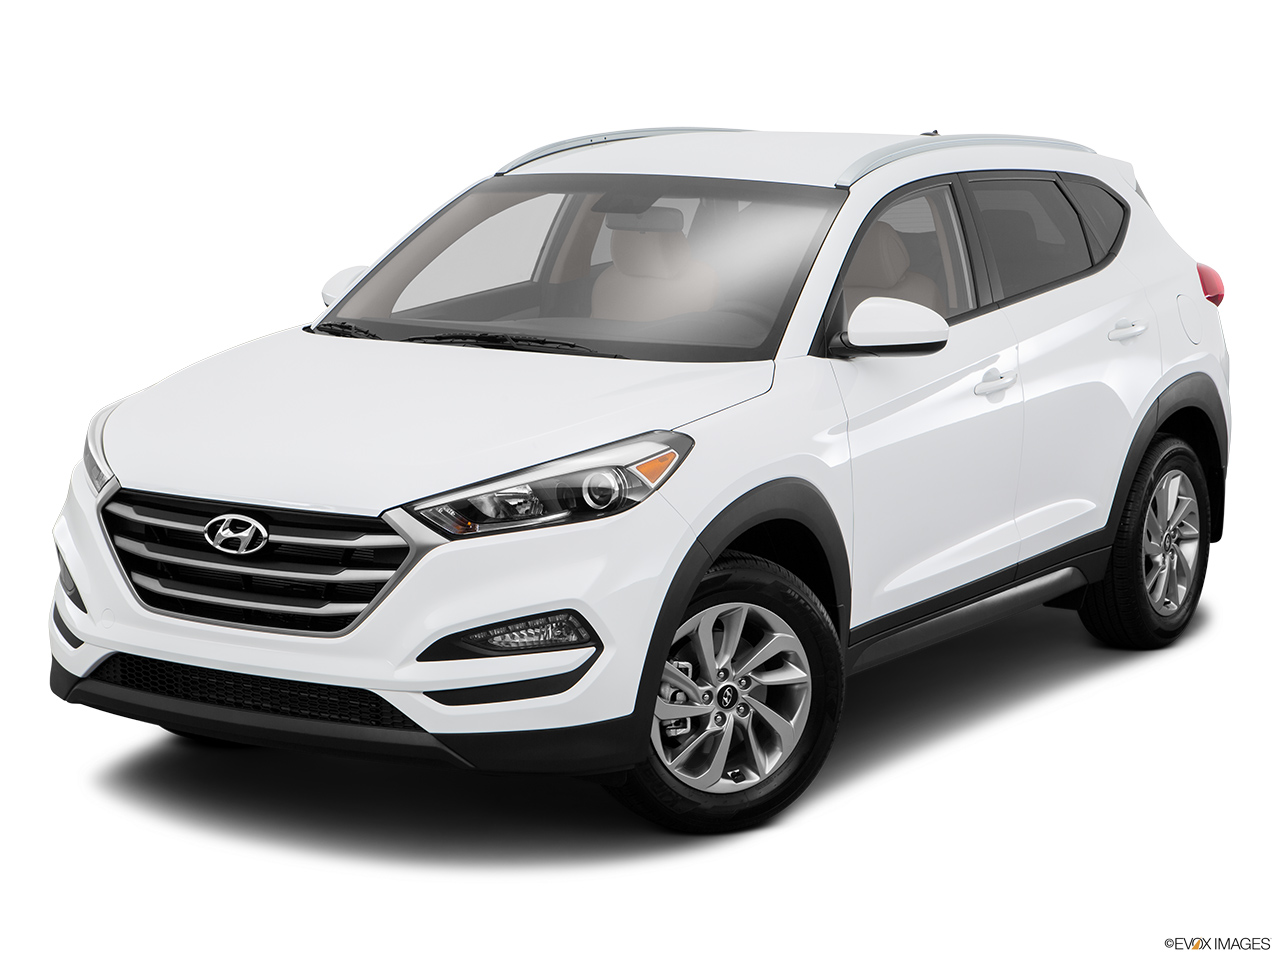 2016 hyundai tucson prices in uae gulf specs reviews for dubai abu dhabi and sharjah. Black Bedroom Furniture Sets. Home Design Ideas